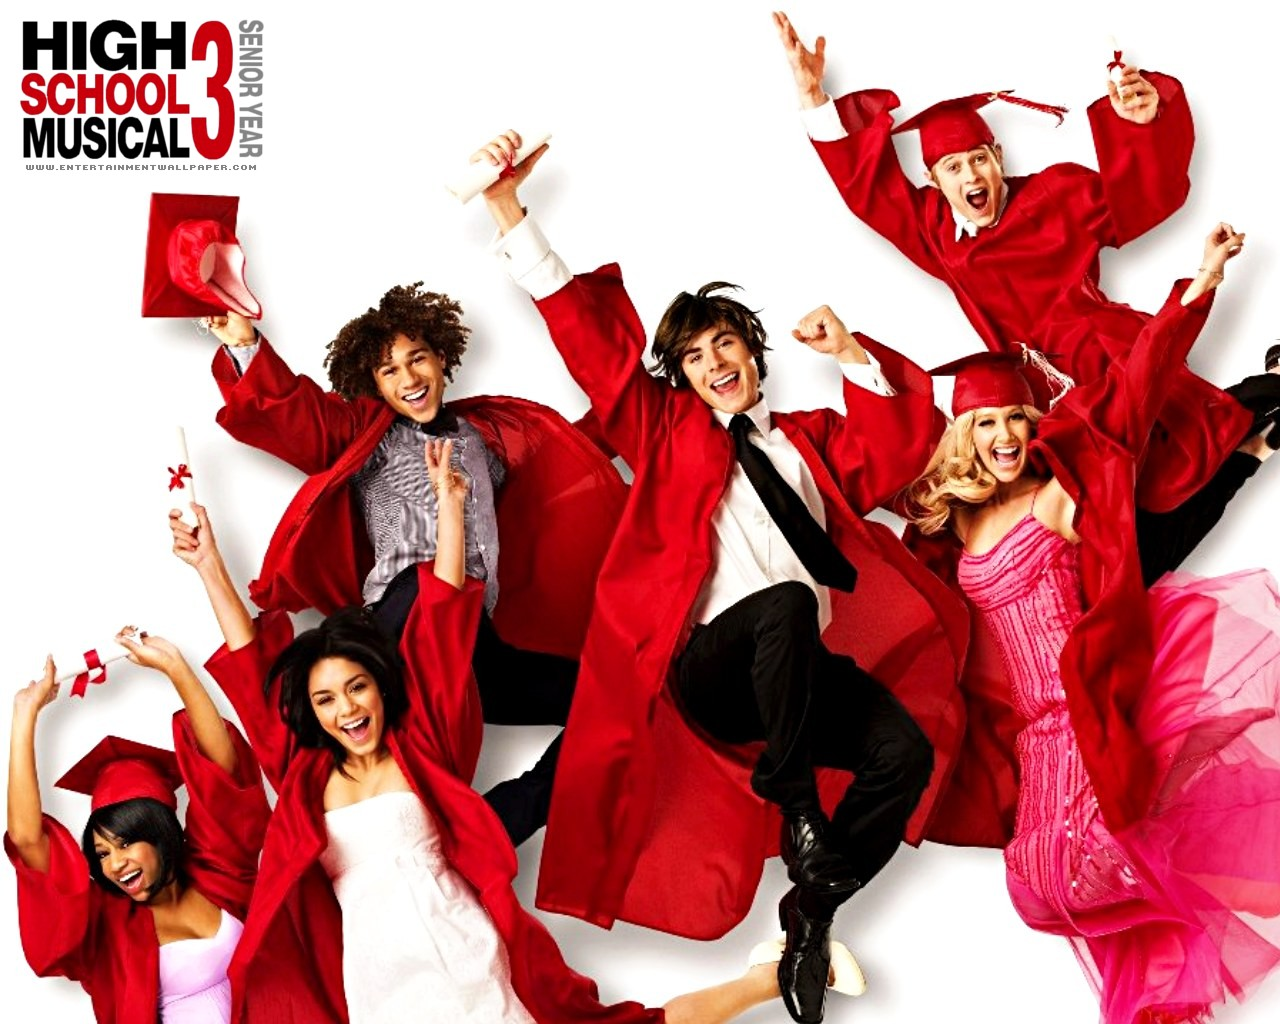 Movie: High School Musical 3